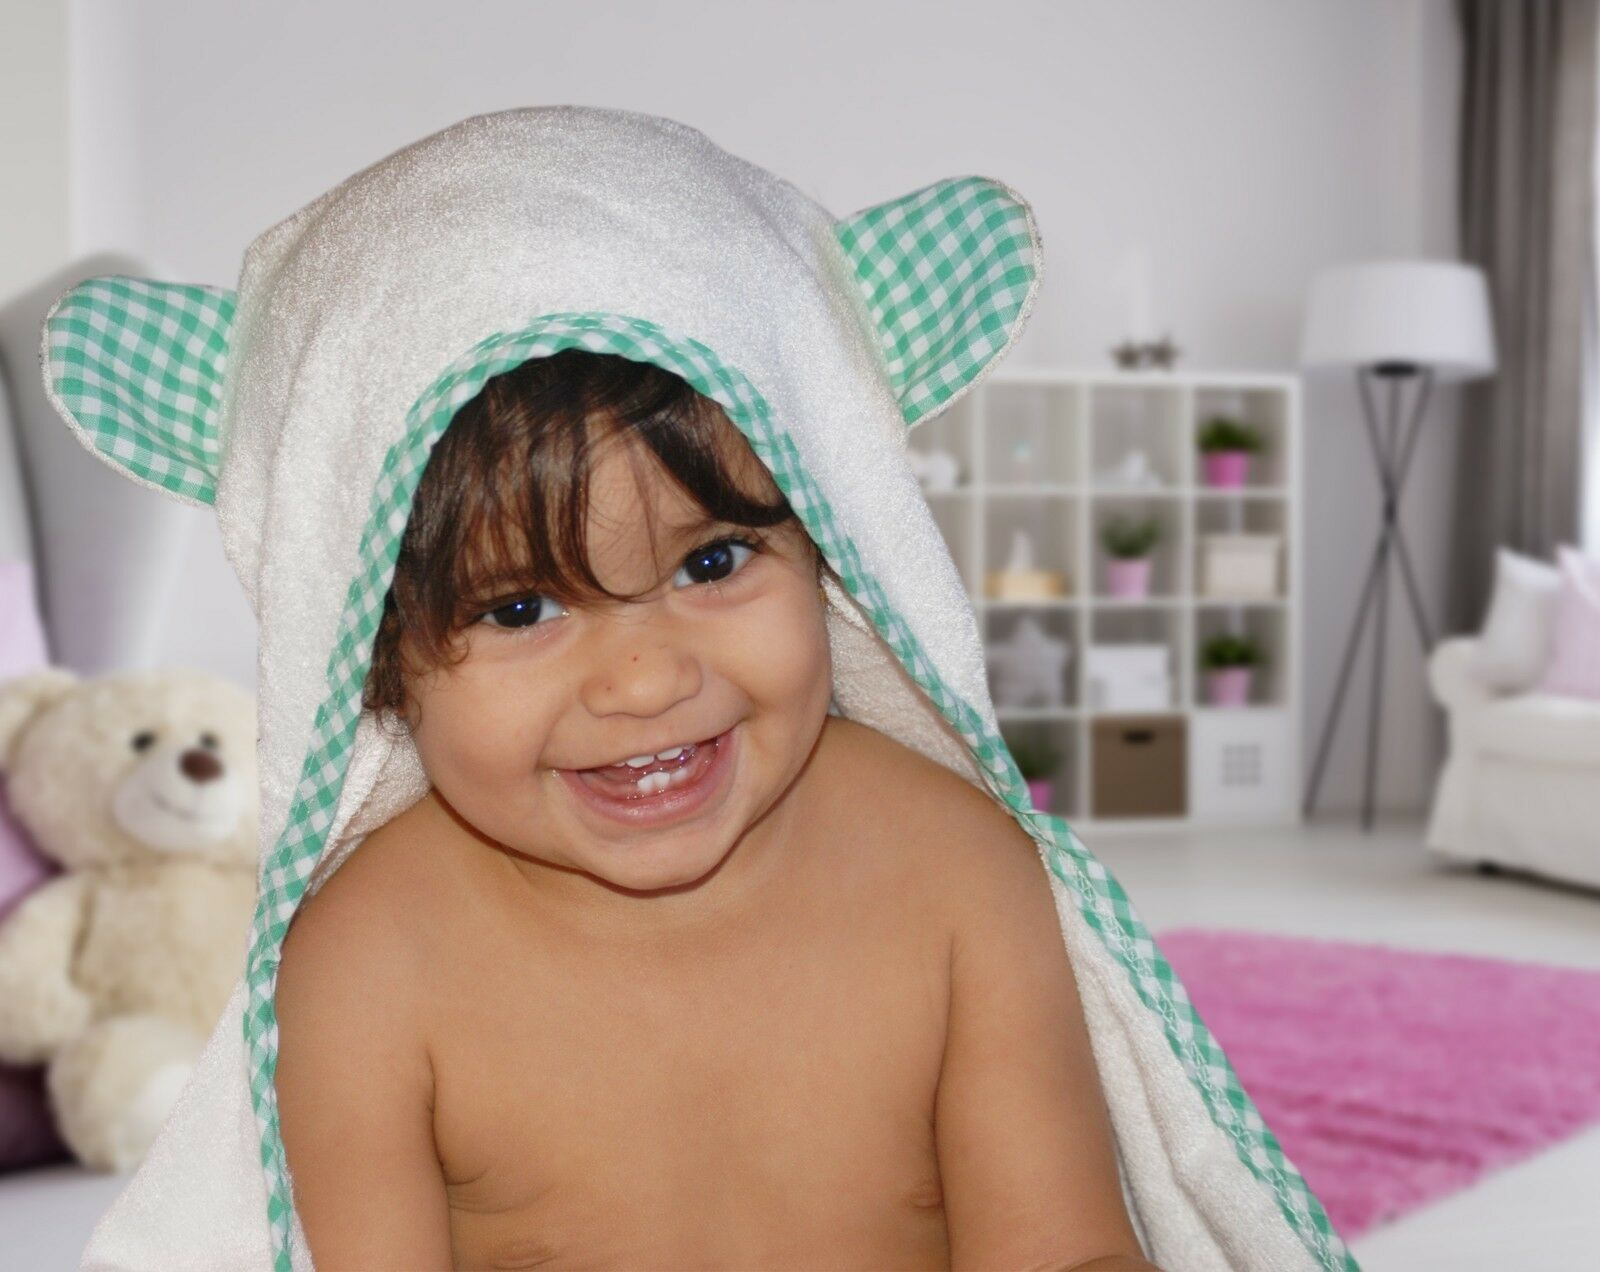 Organic Hooded Baby Towel for Newborn, Toddlers, and Infants